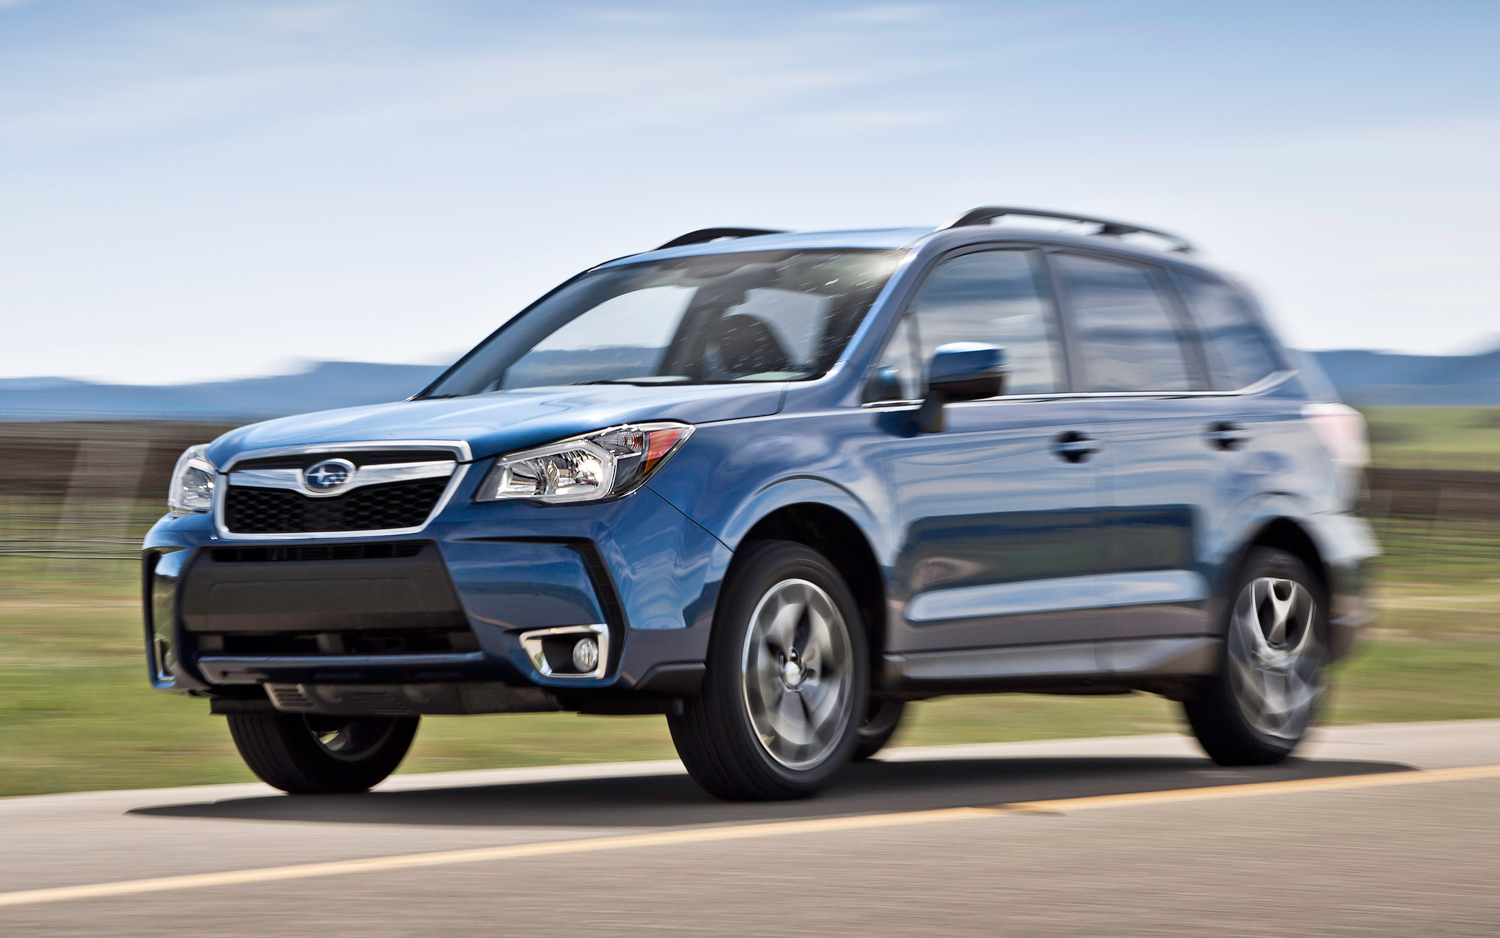 2014 Subaru Forester 2 5i Limited Xt First Test Photo Image Gallery